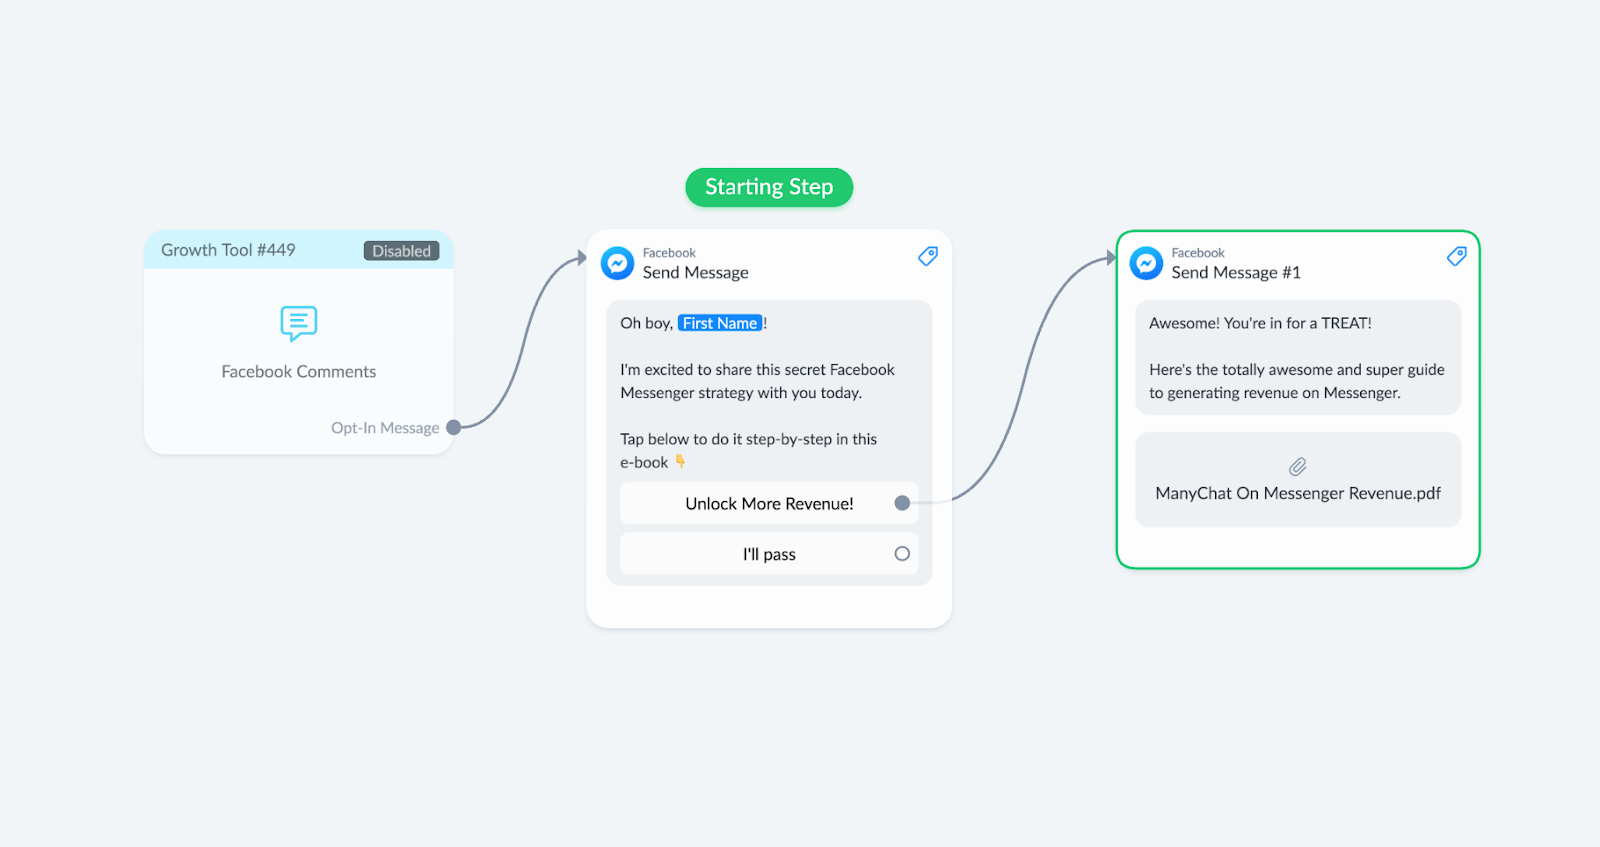 Facebook comments growth tool bot flow eample